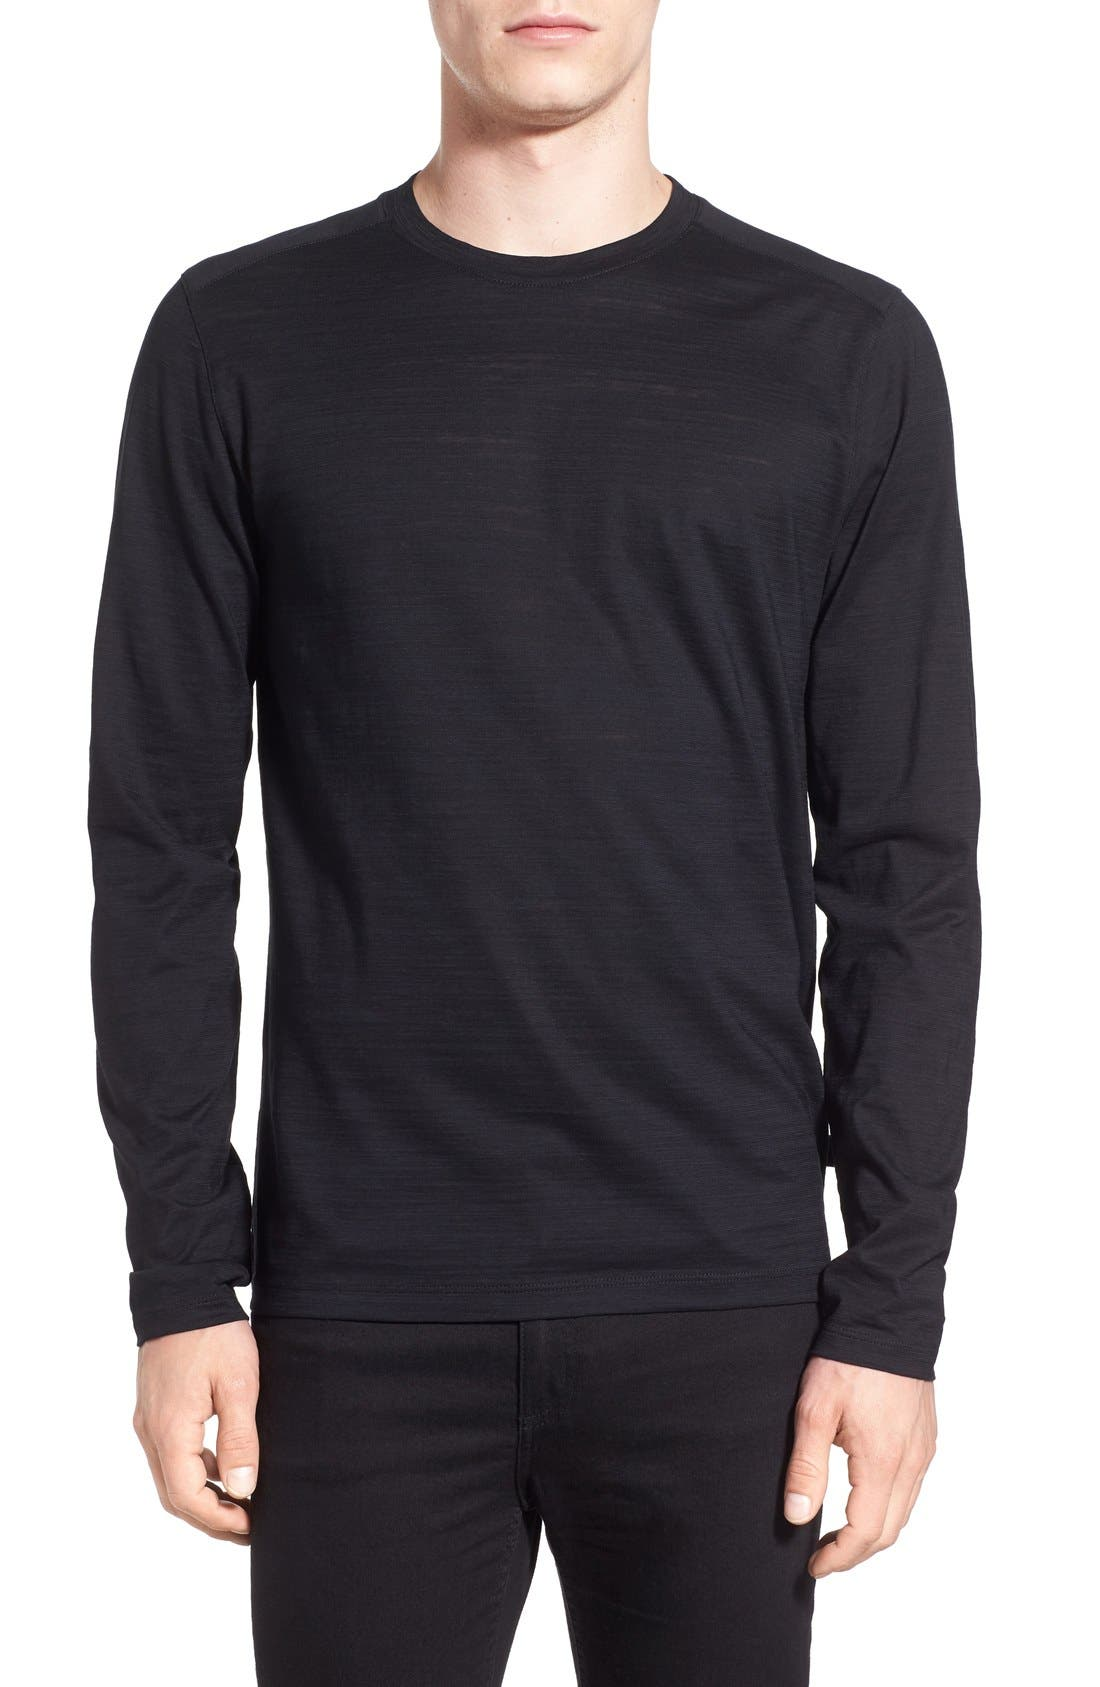 Alternate Image 1 Selected - BOSS 'Tenison' Slim Fit Long Sleeve T-Shirt